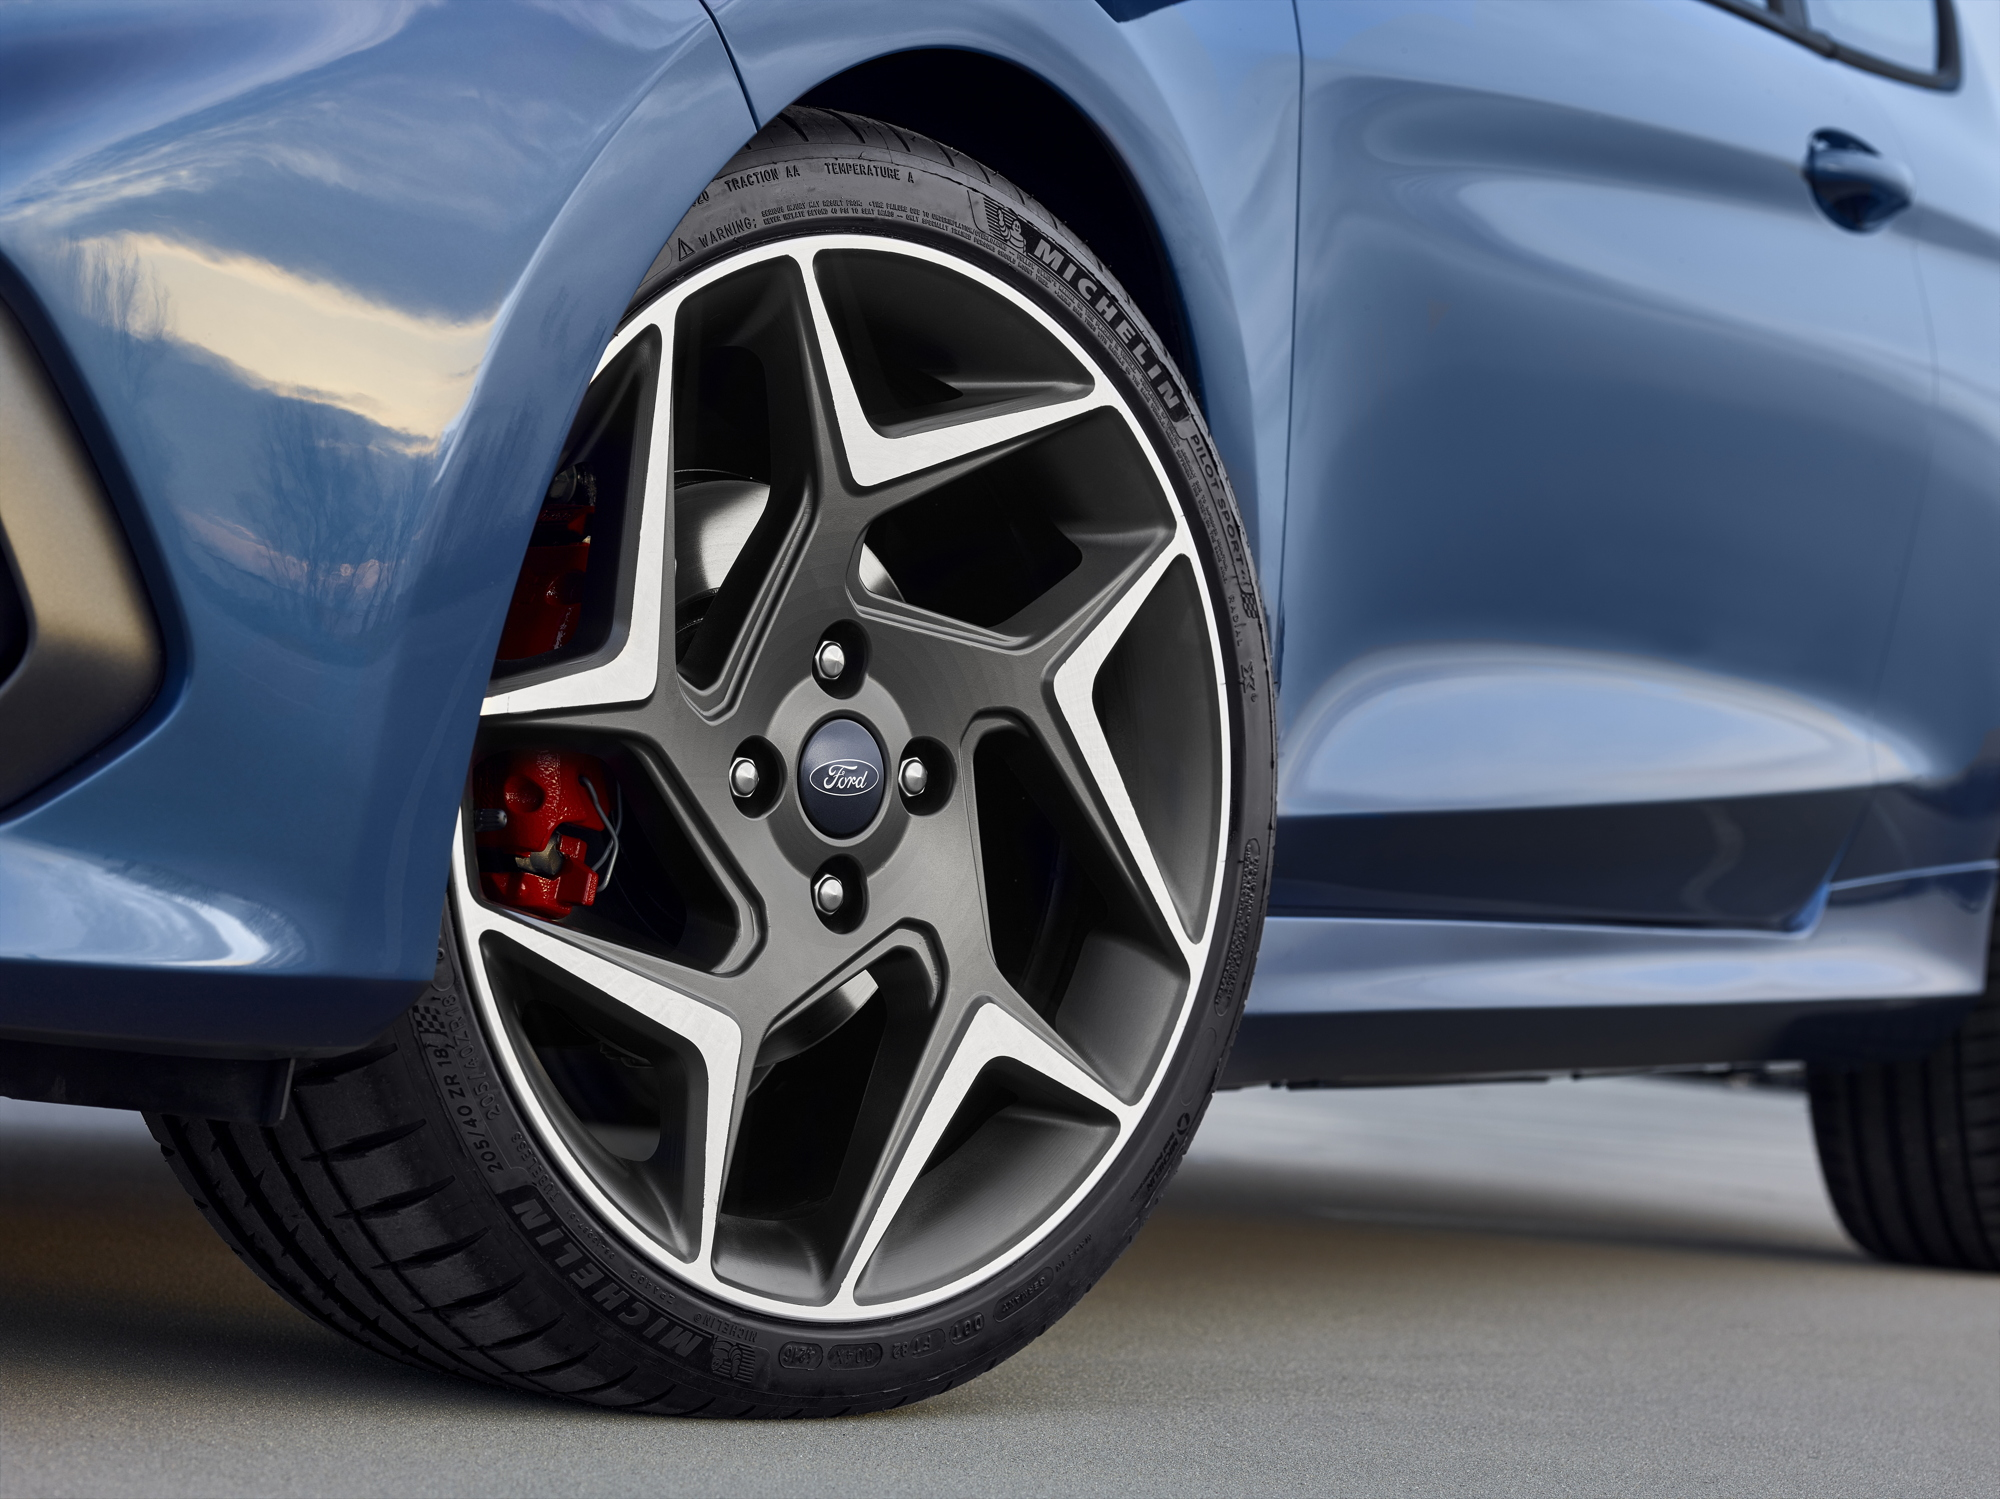 2018 Ford Fiesta ST wheels